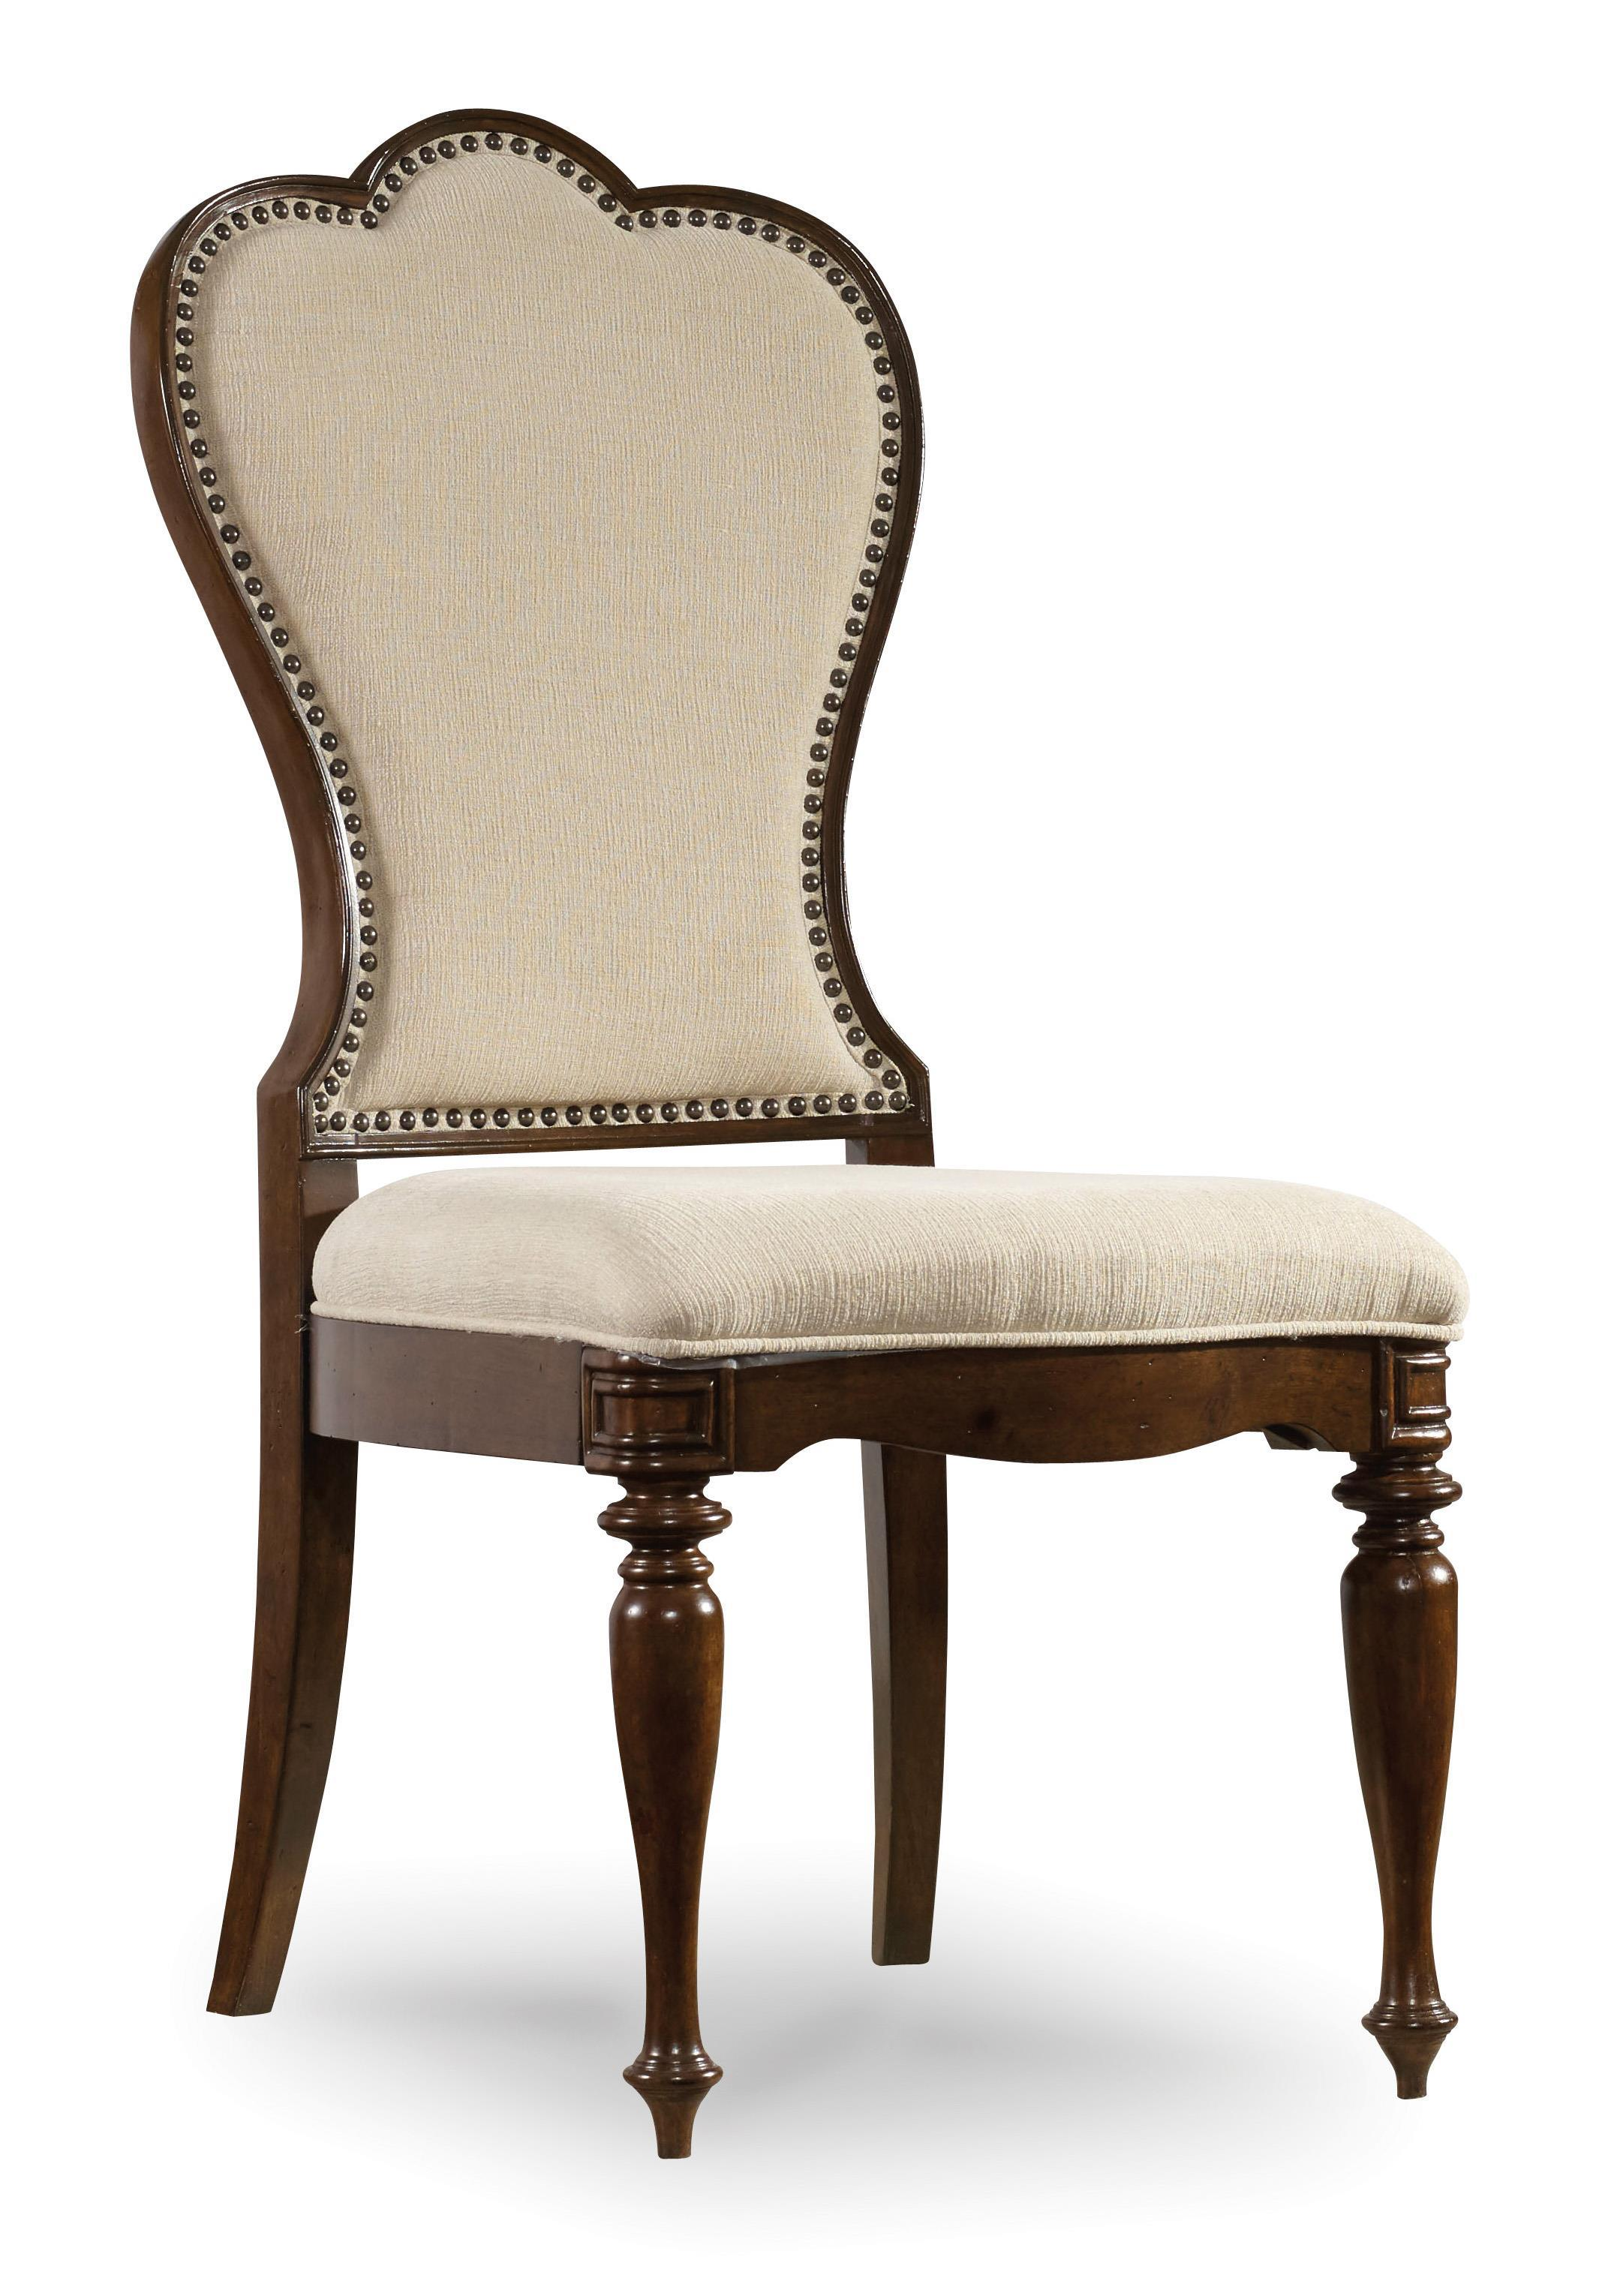 Hooker Furniture Leesburg Upholstered Side Chair - Item Number: 5381-75410